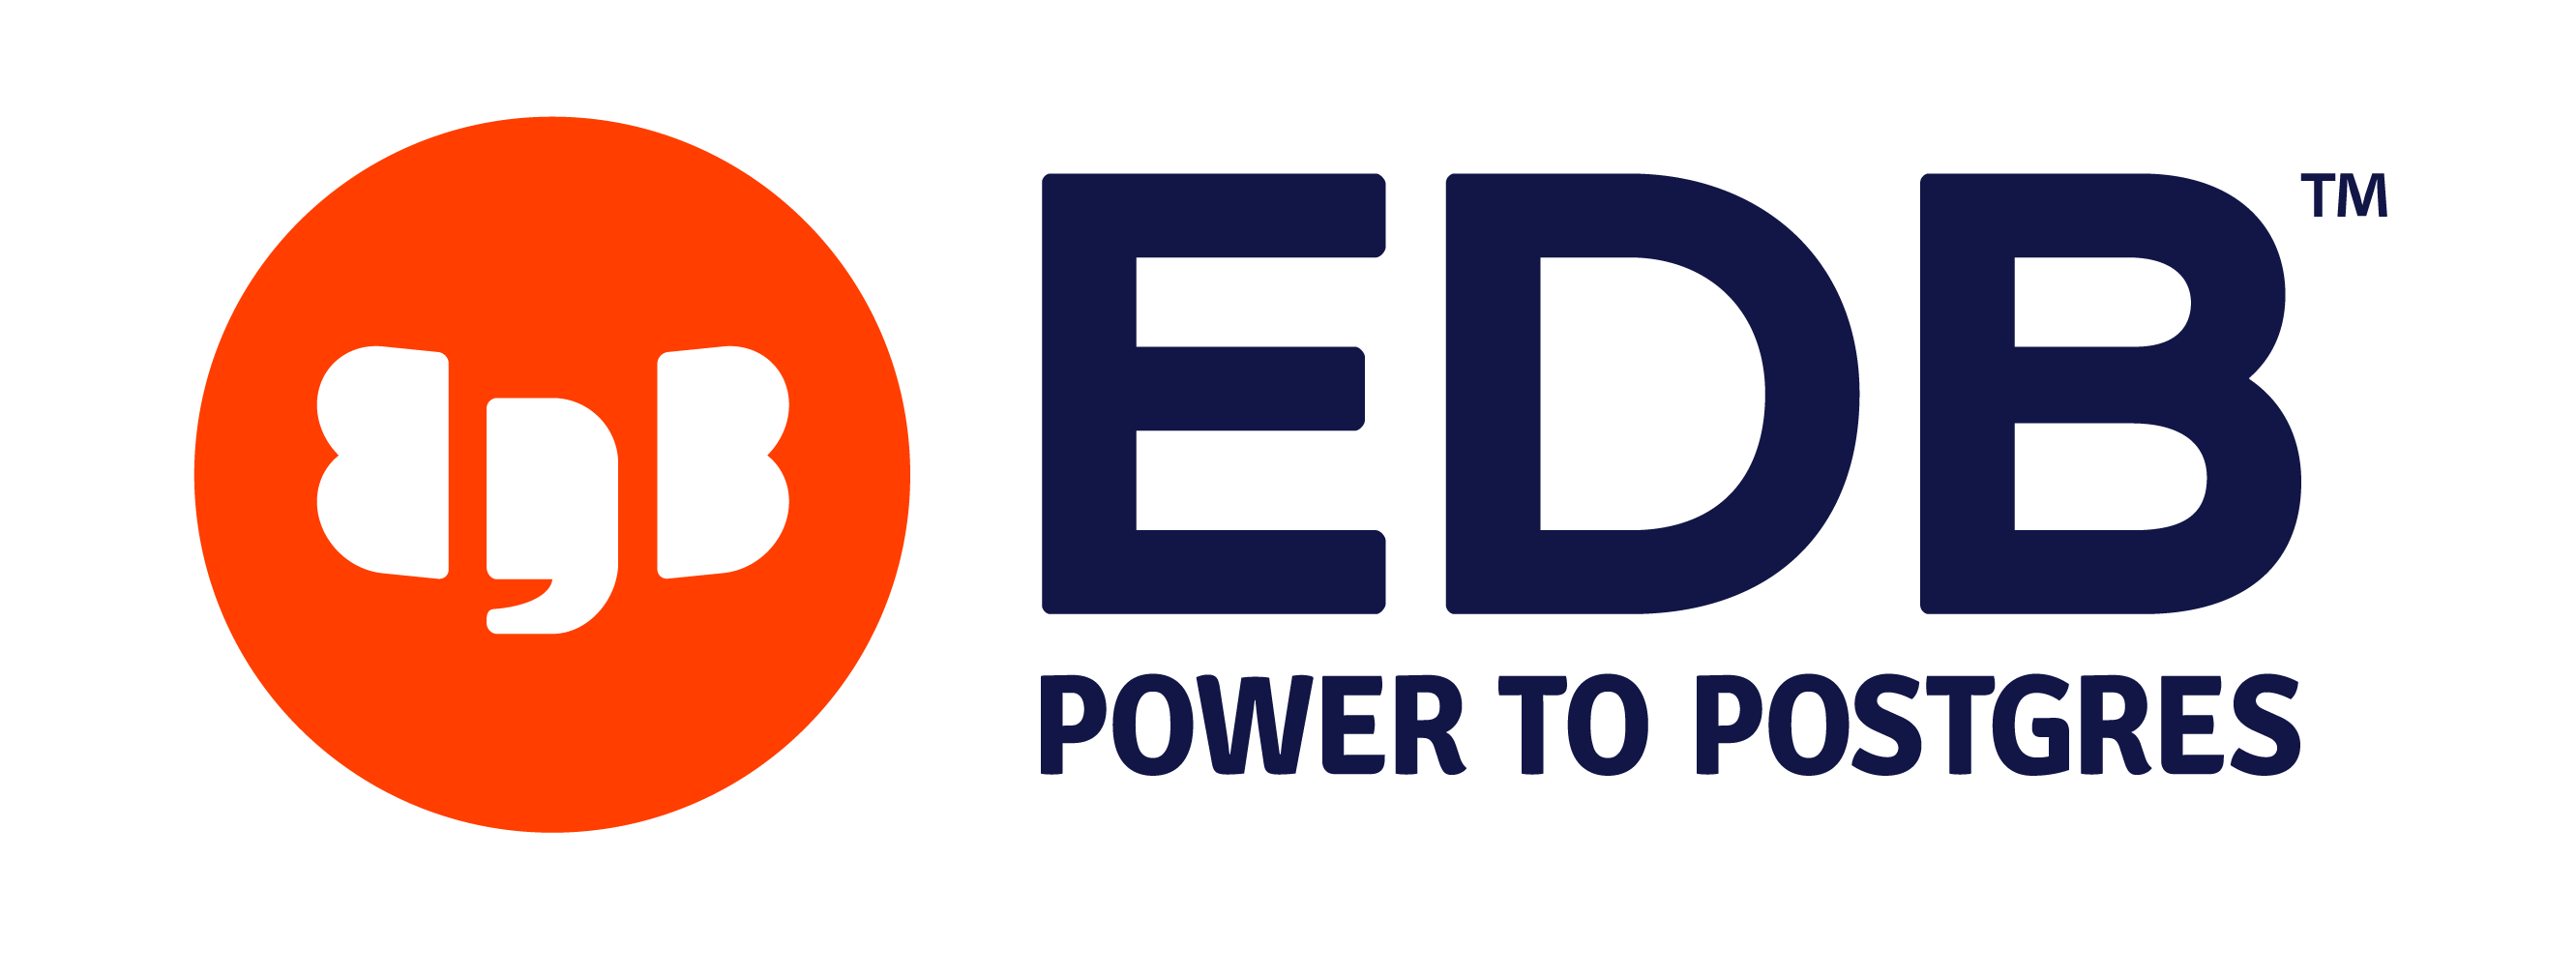 EDB_power_to_postgers-1